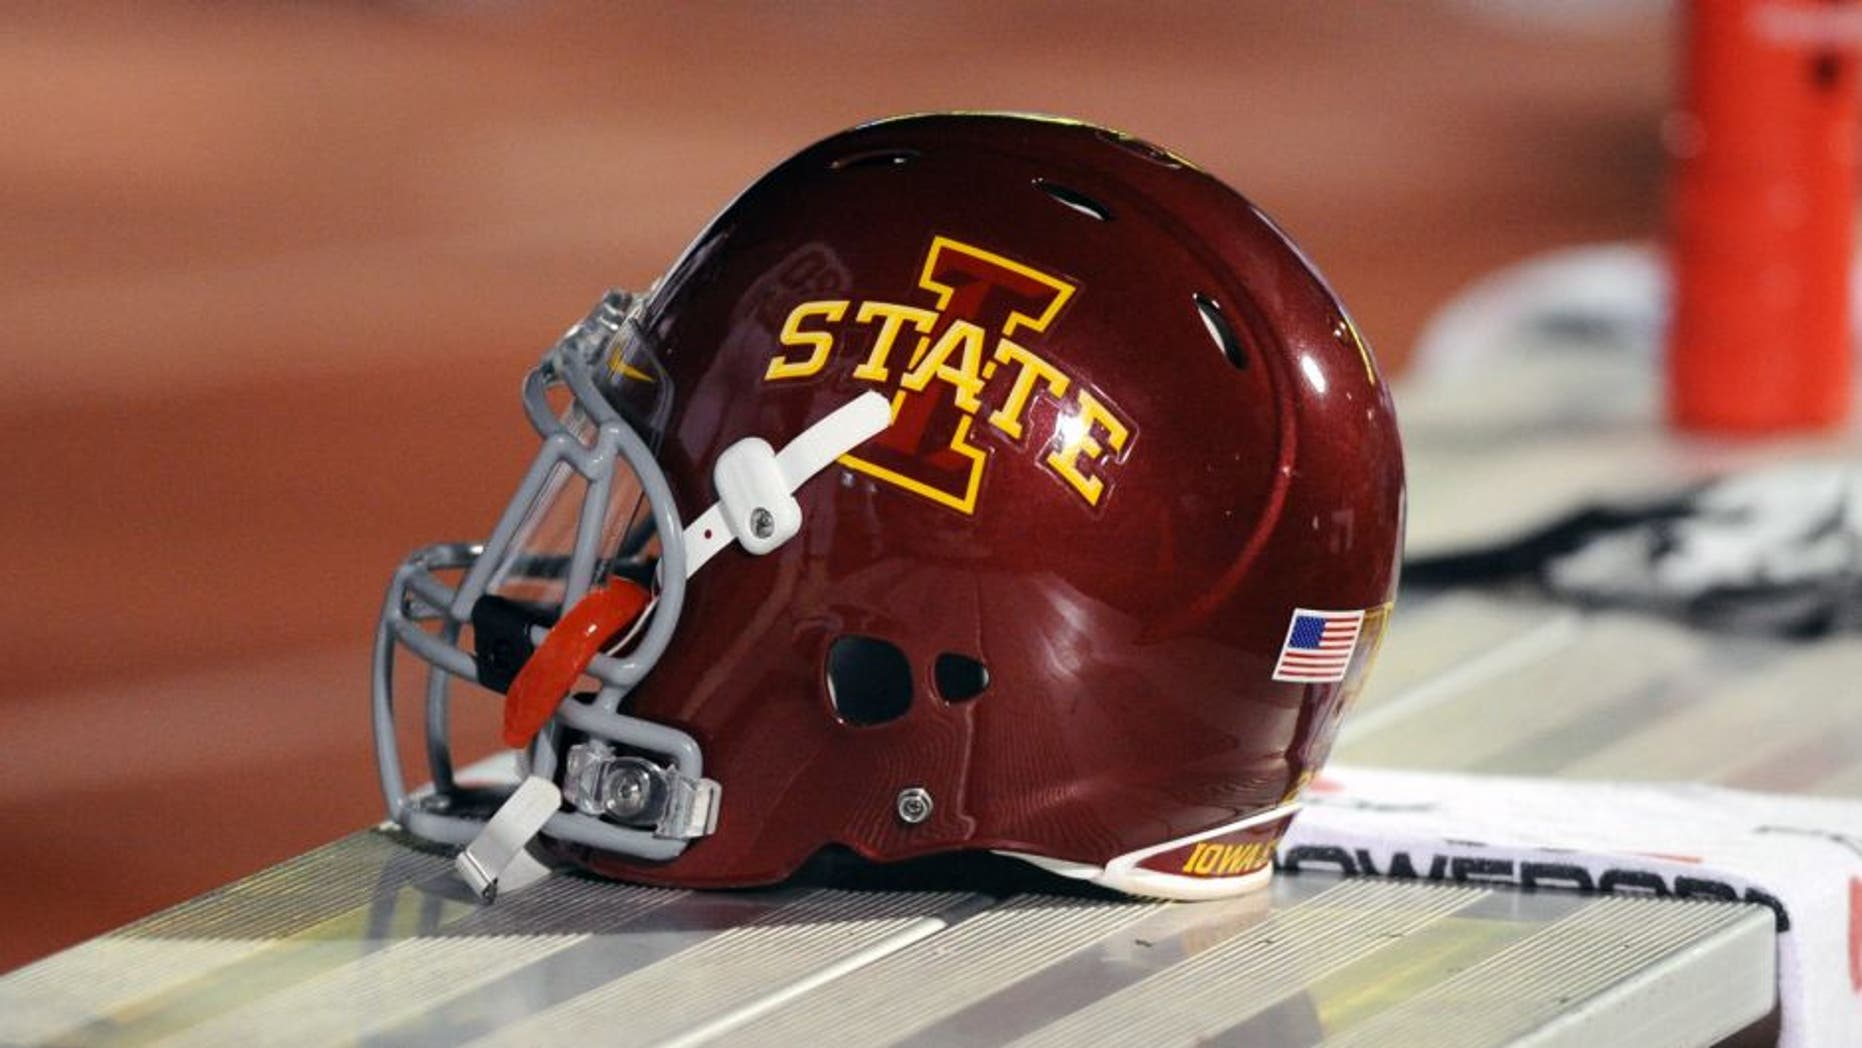 Nov 17, 2012; Lawrence, KS, USA; An Iowa State Cyclones helmet on the bench against the Kansas Jayhawks in the second half at Memorial Stadium. Iowa State won the game 51-23. Mandatory Credit: John Rieger-USA TODAY Sports